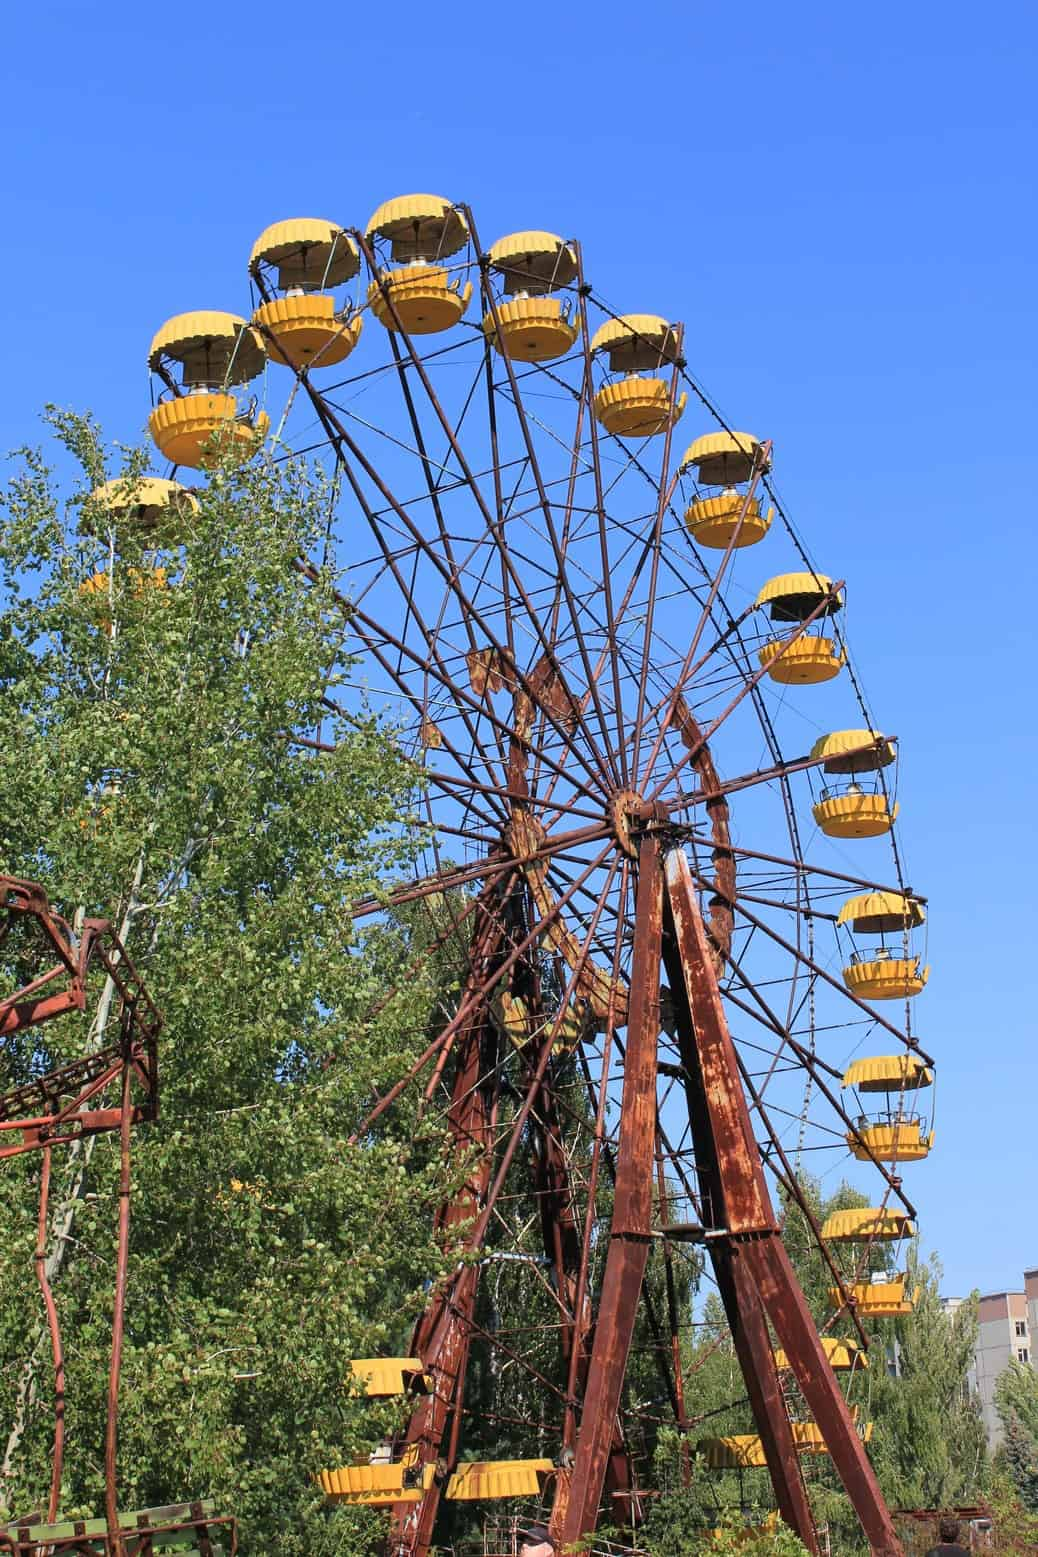 The famous Pripyat ferris wheel